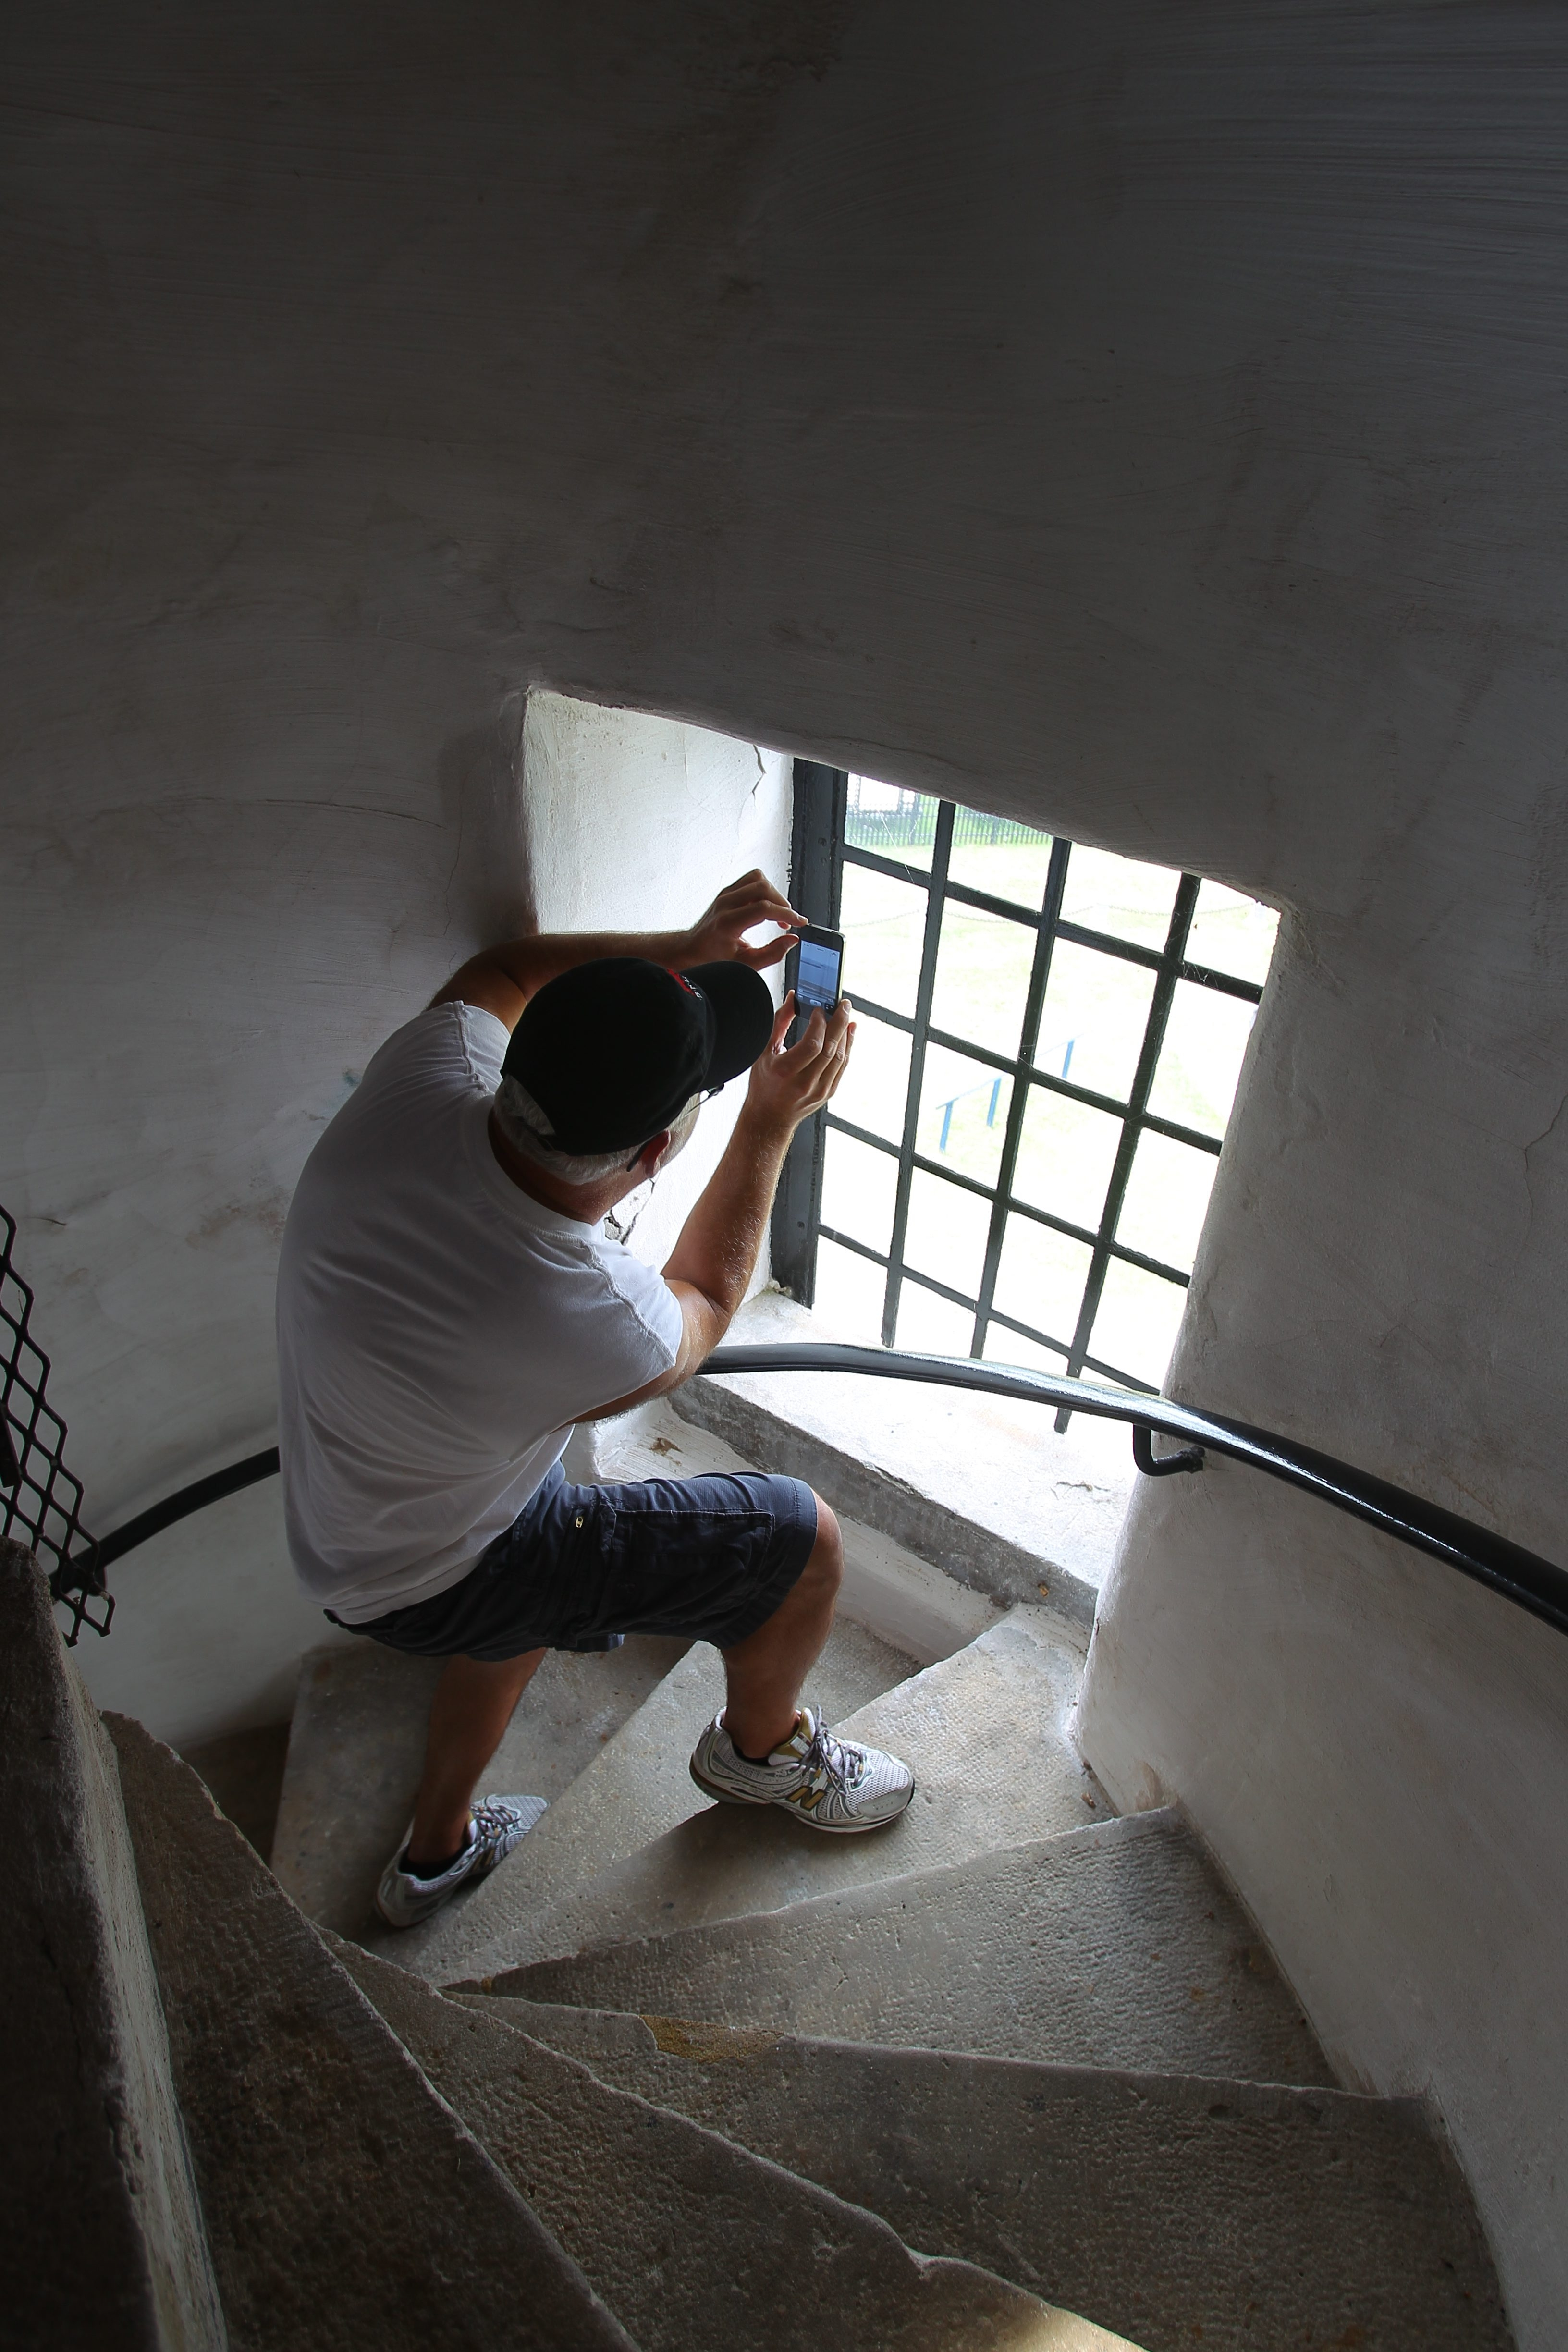 Dennis Rich  of West Seneca  takes a photo from a window on the spiral staircase of the  1833 lighthouse, shown at left,  opened to the public after renovations.